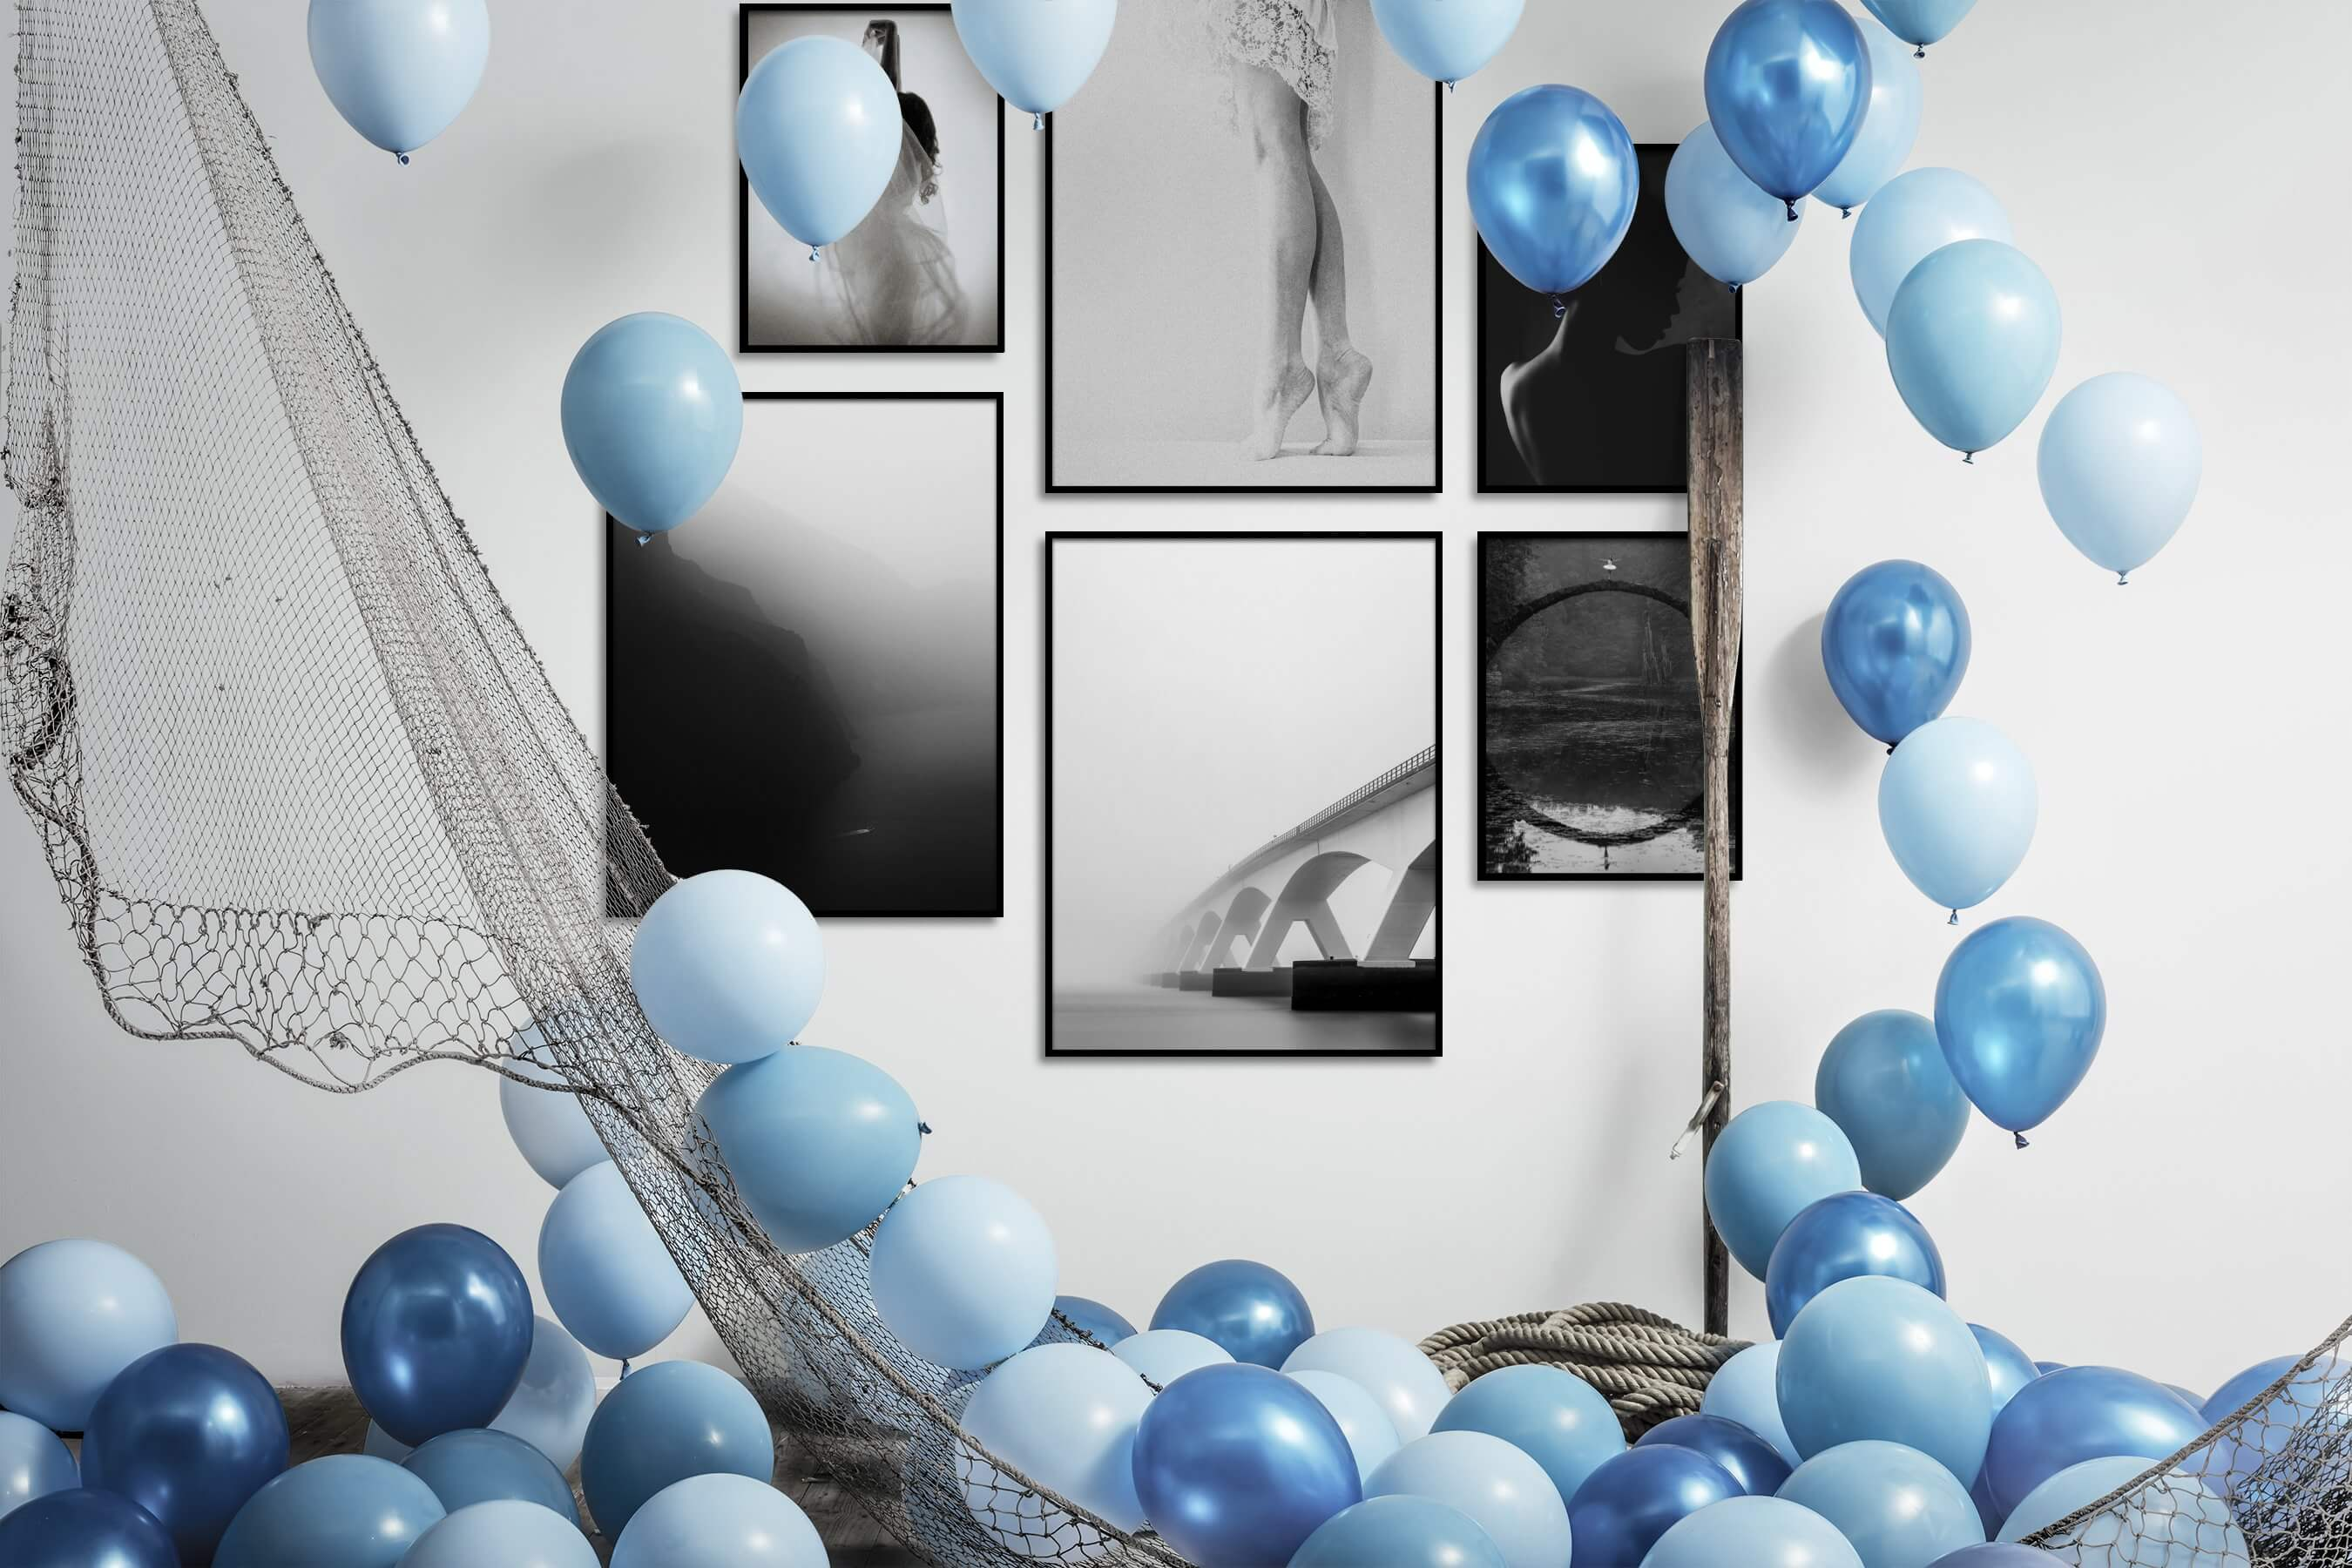 Gallery wall idea with six framed pictures arranged on a wall depicting Fashion & Beauty, Black & White, For the Moderate, Vintage, Nature, Mindfulness, Bright Tones, For the Minimalist, and Dark Tones